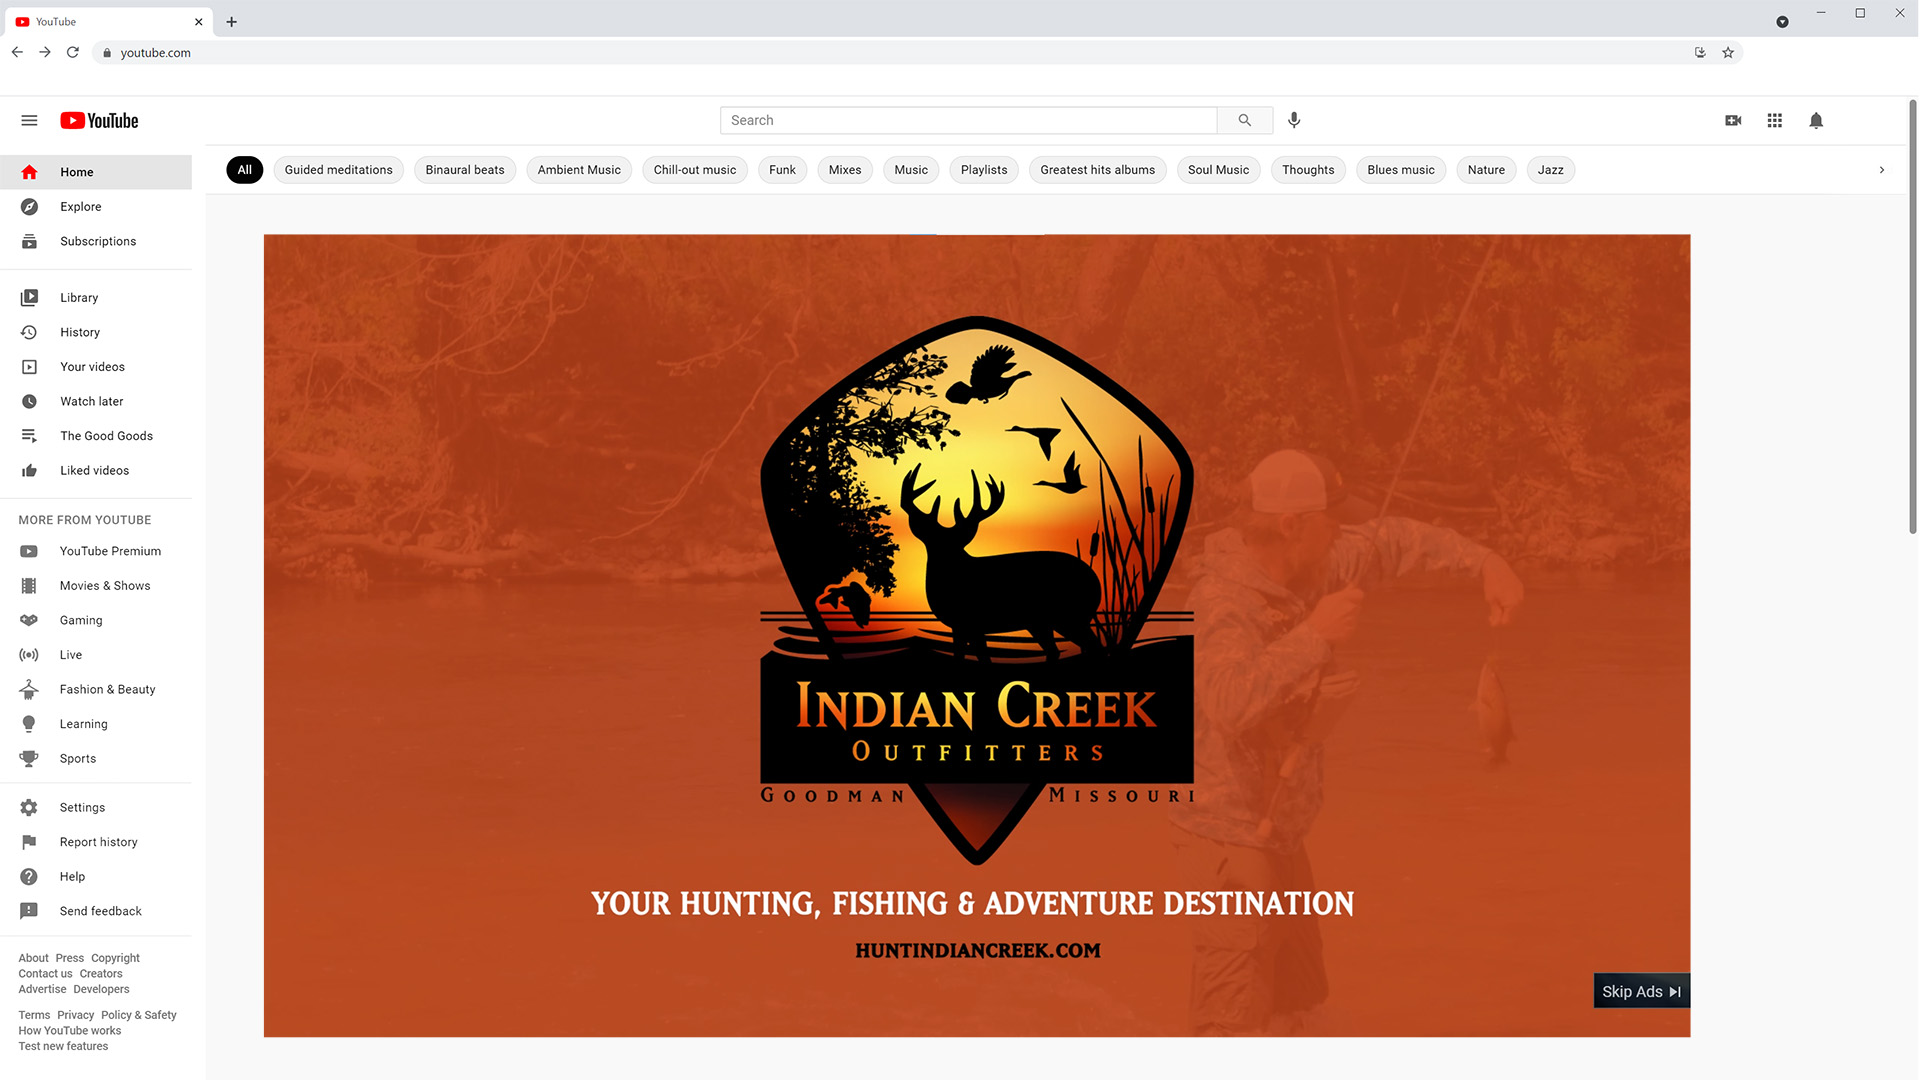 YouTube Ads Indian Creek Outfitters Digital Advertising